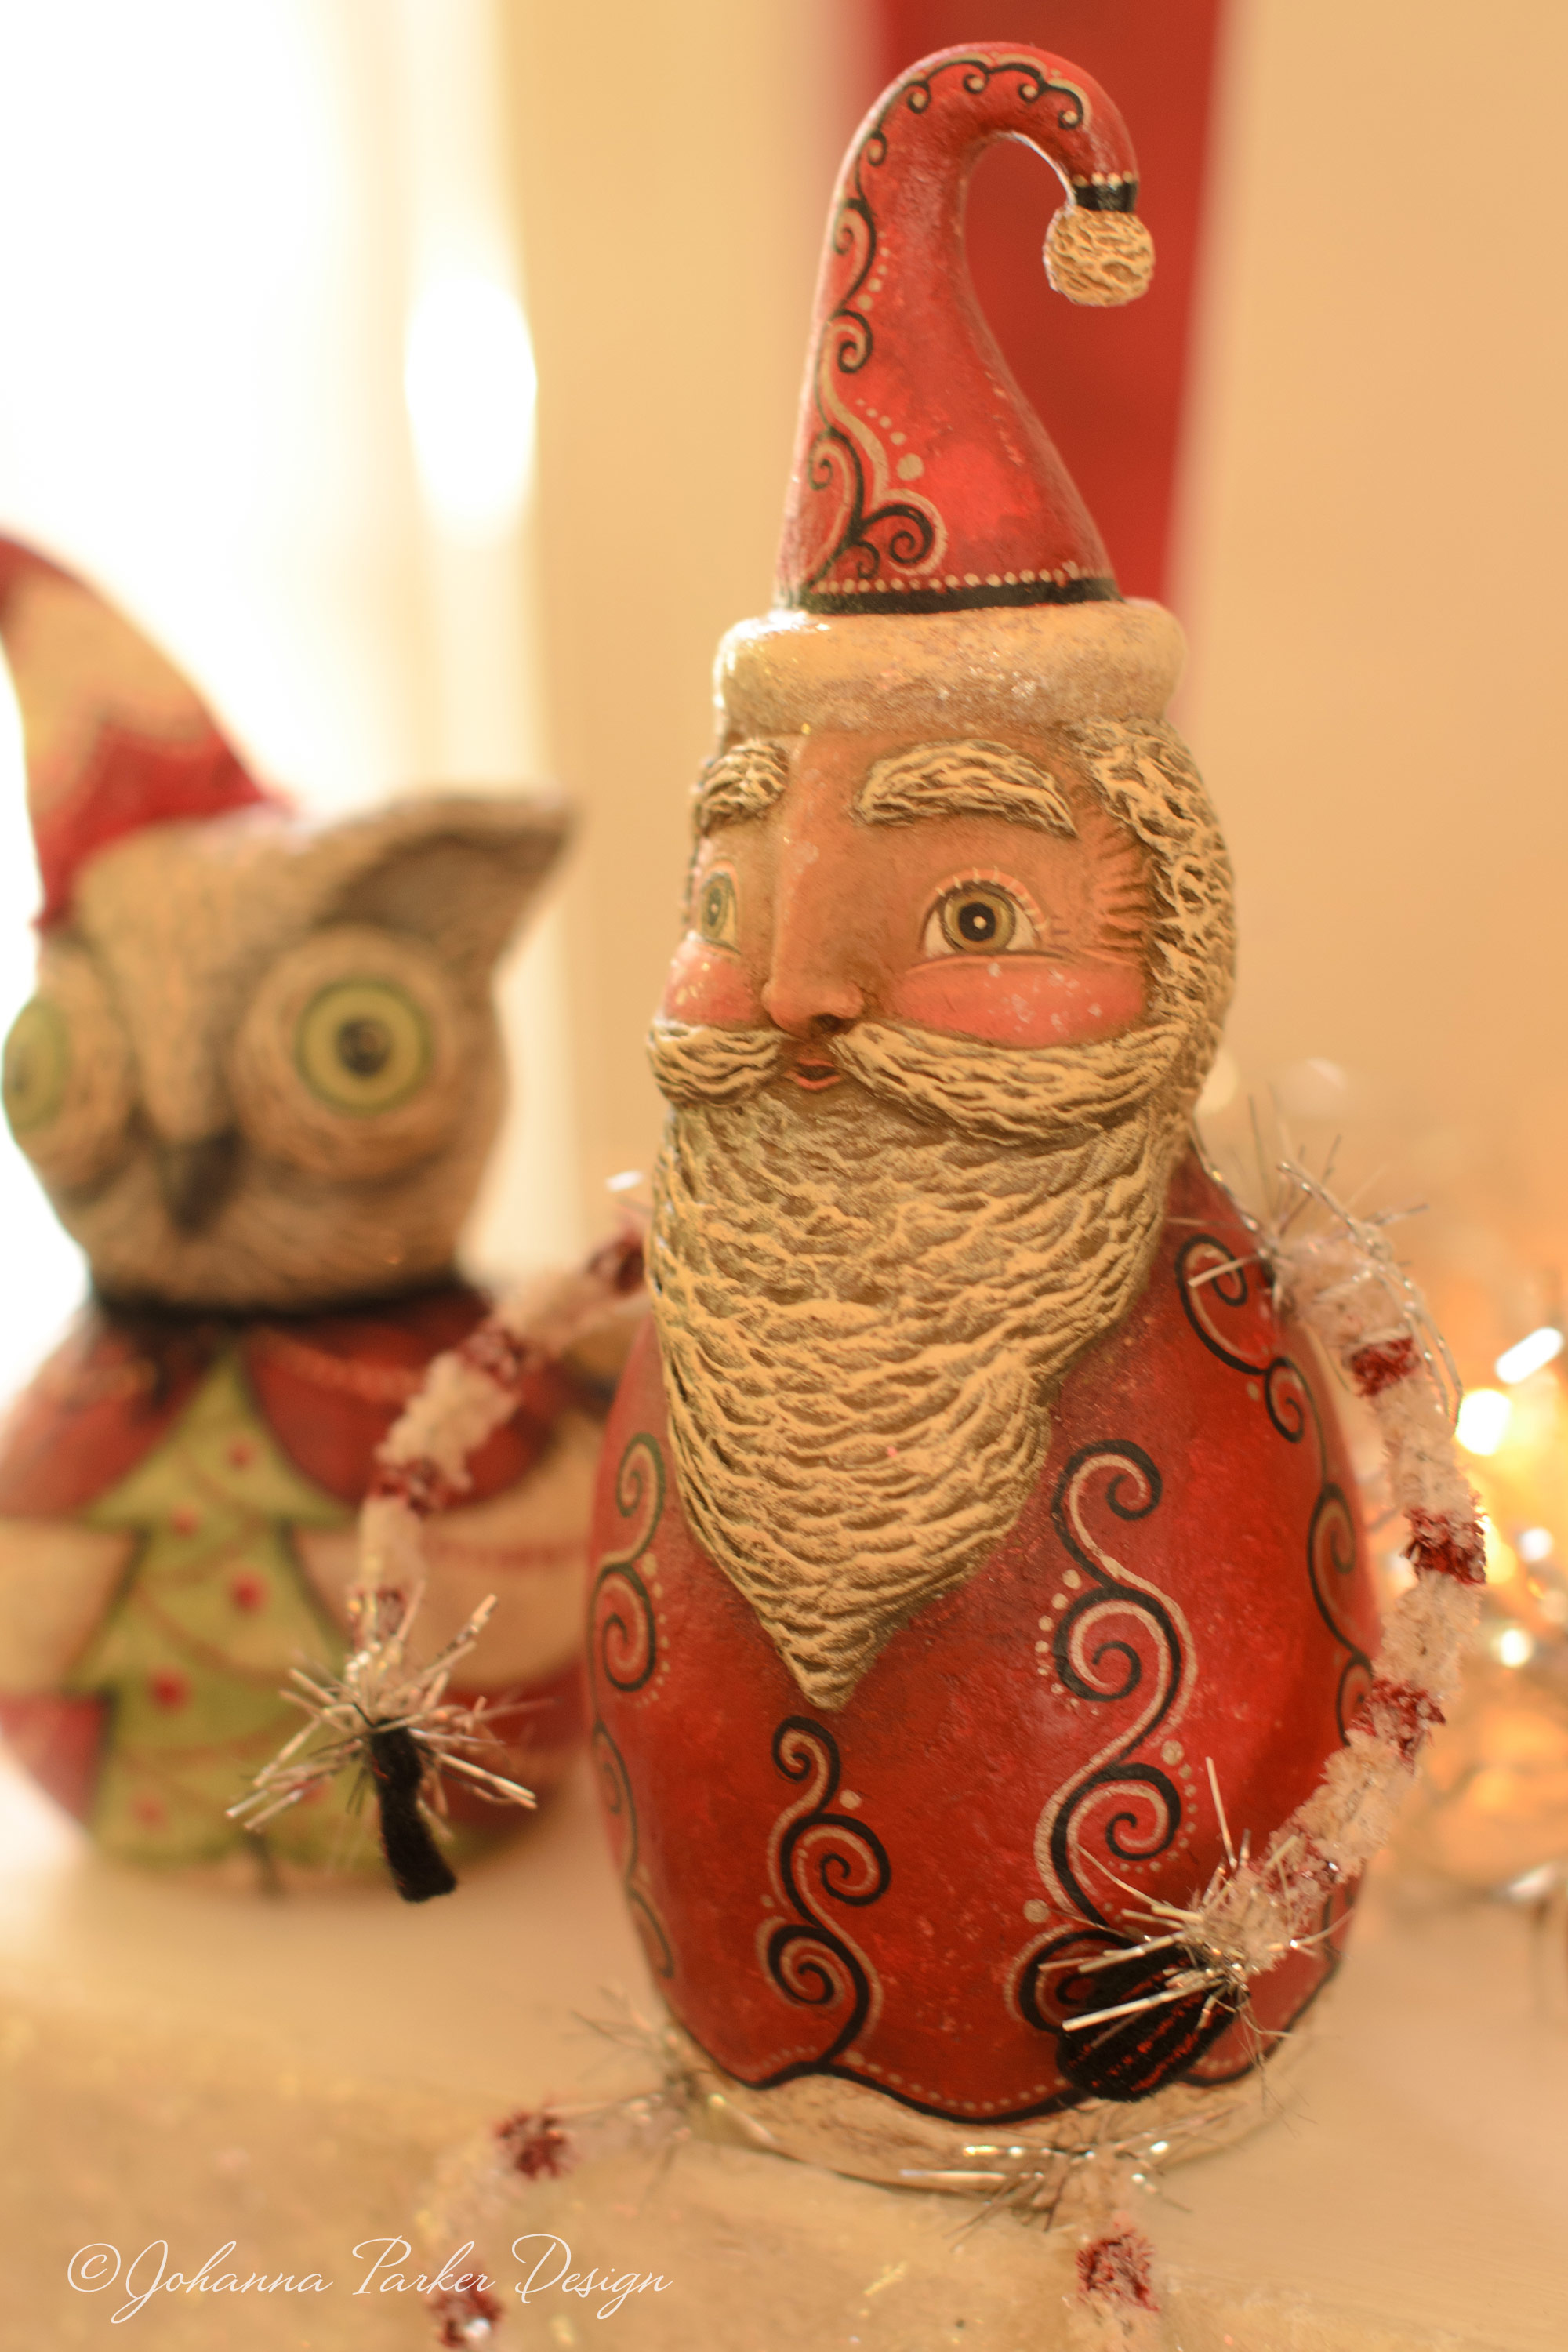 Santa sitter with owl